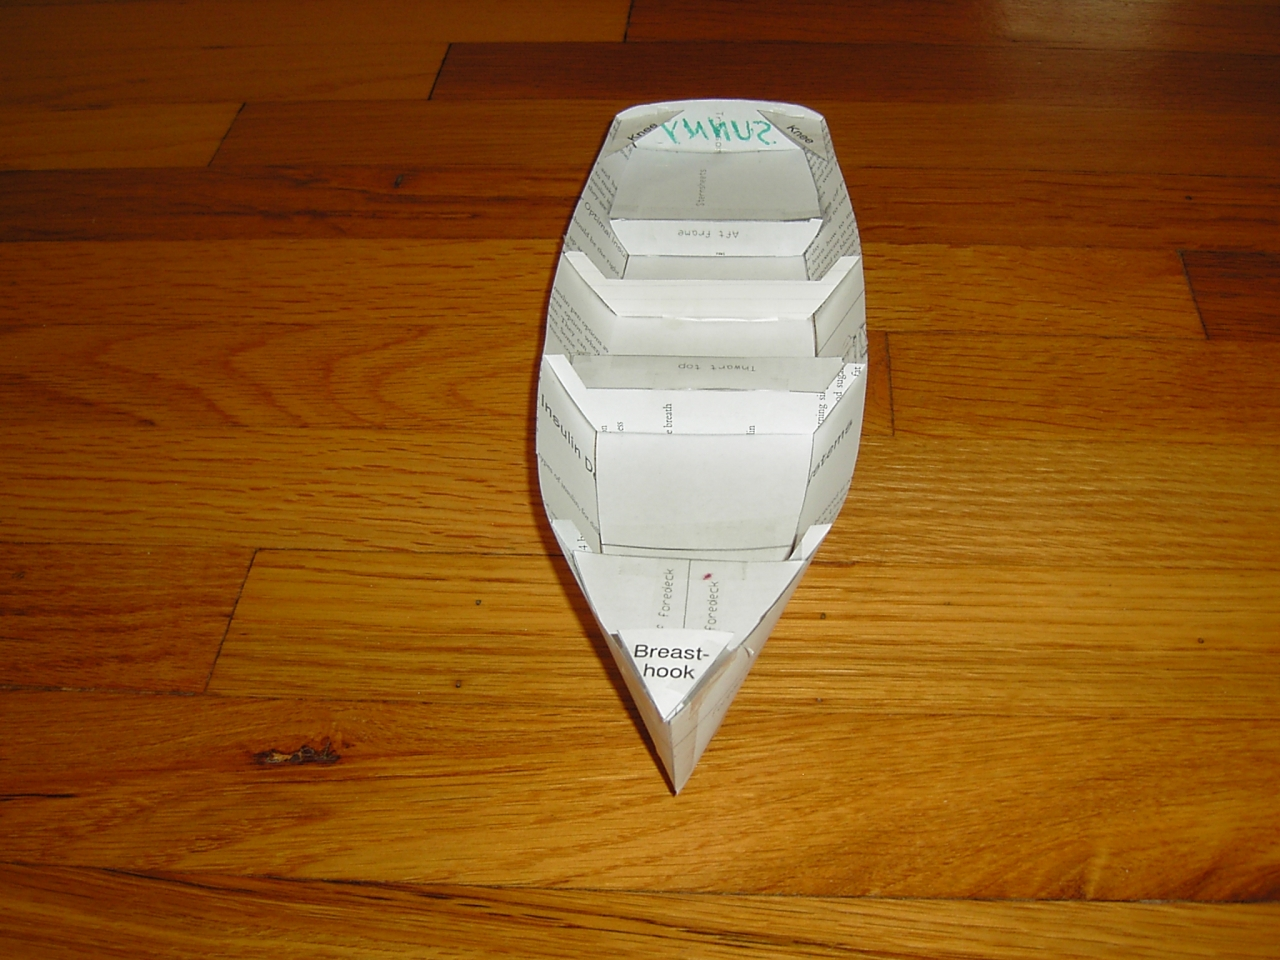 Drawings for building a model of the 14ft stitch and glue Sunny skiff | intheboatshed.net